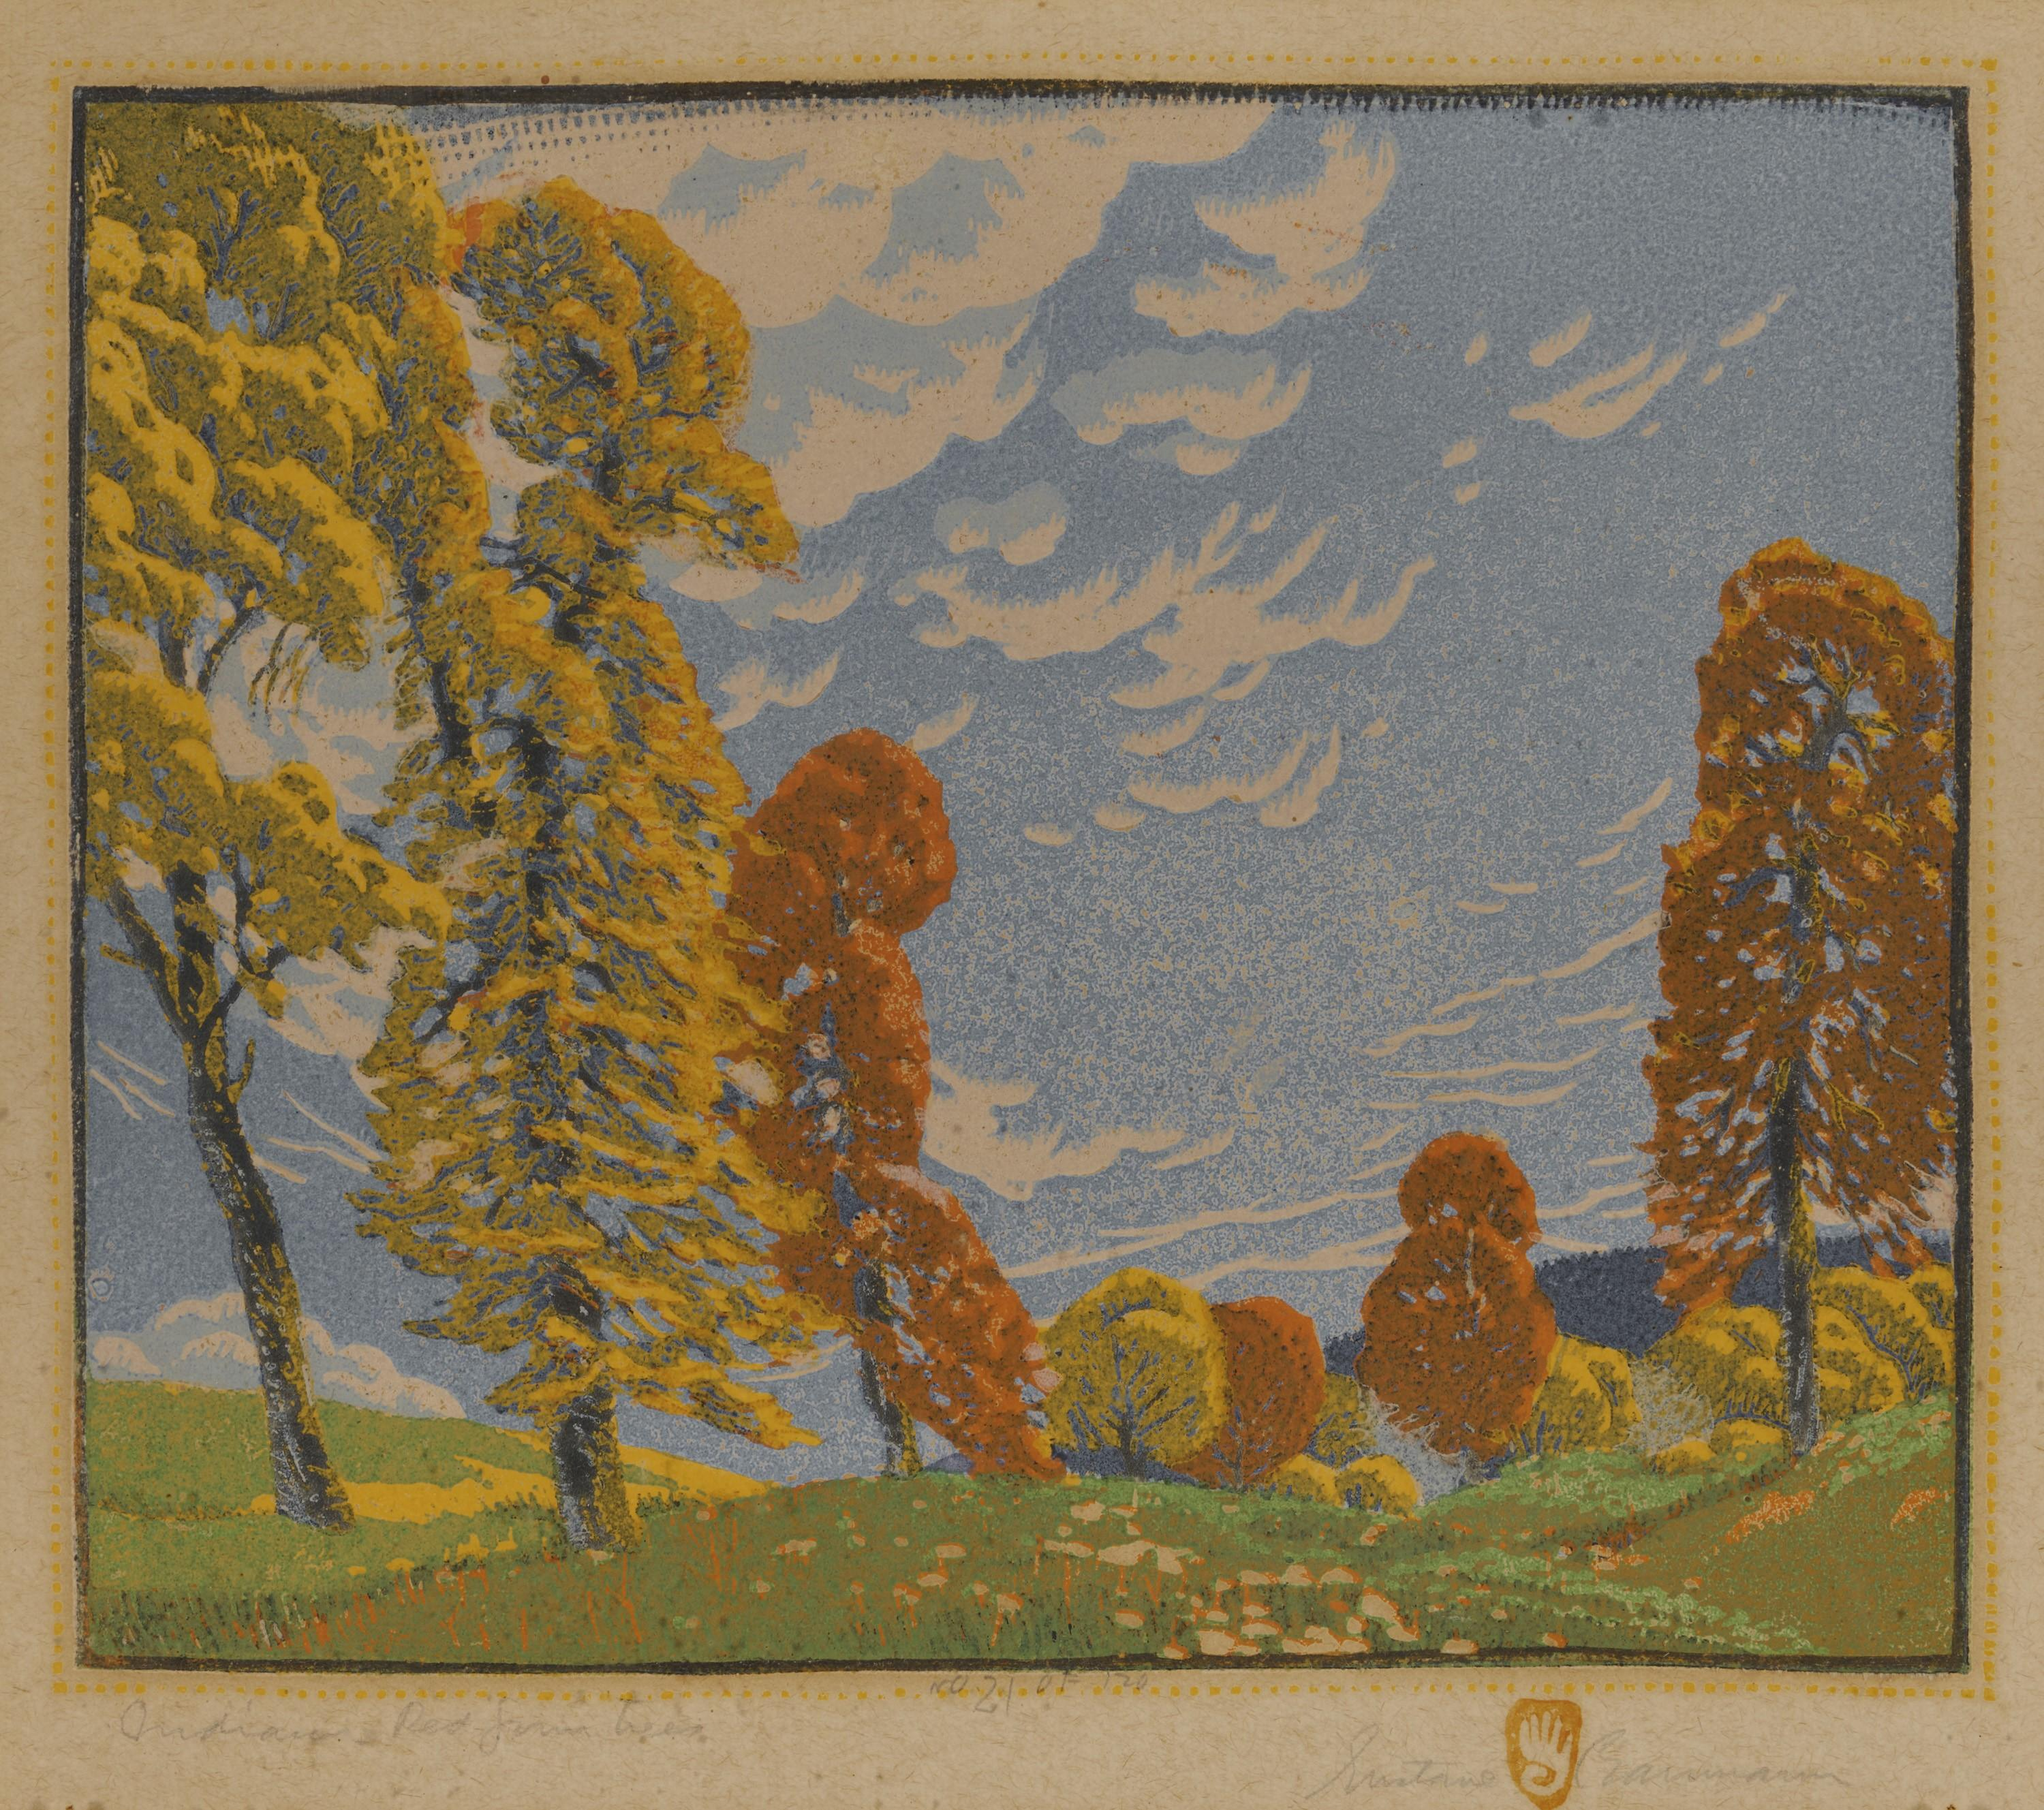 GUSTAVE BAUMANN, (American, 1881-1971), Indiana Red Gum Trees, woodcut in colors, plate: 9 3/8 x 11 1/8 in., frame: 16 3/4 x 17 1/2 in.